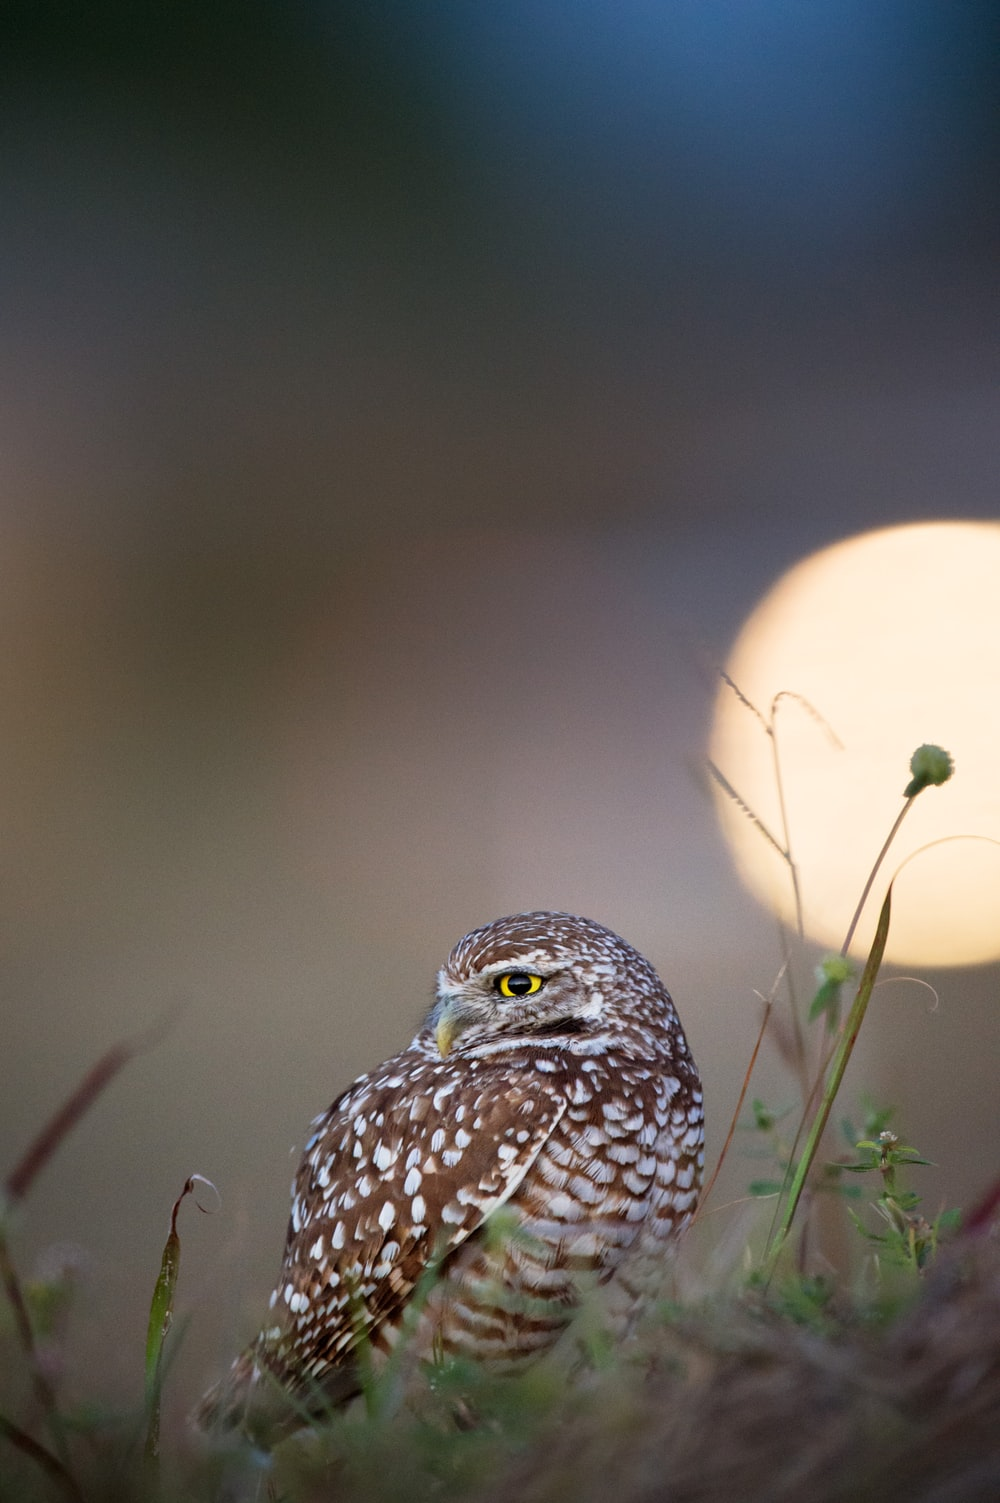 brown and white owl close-up photography